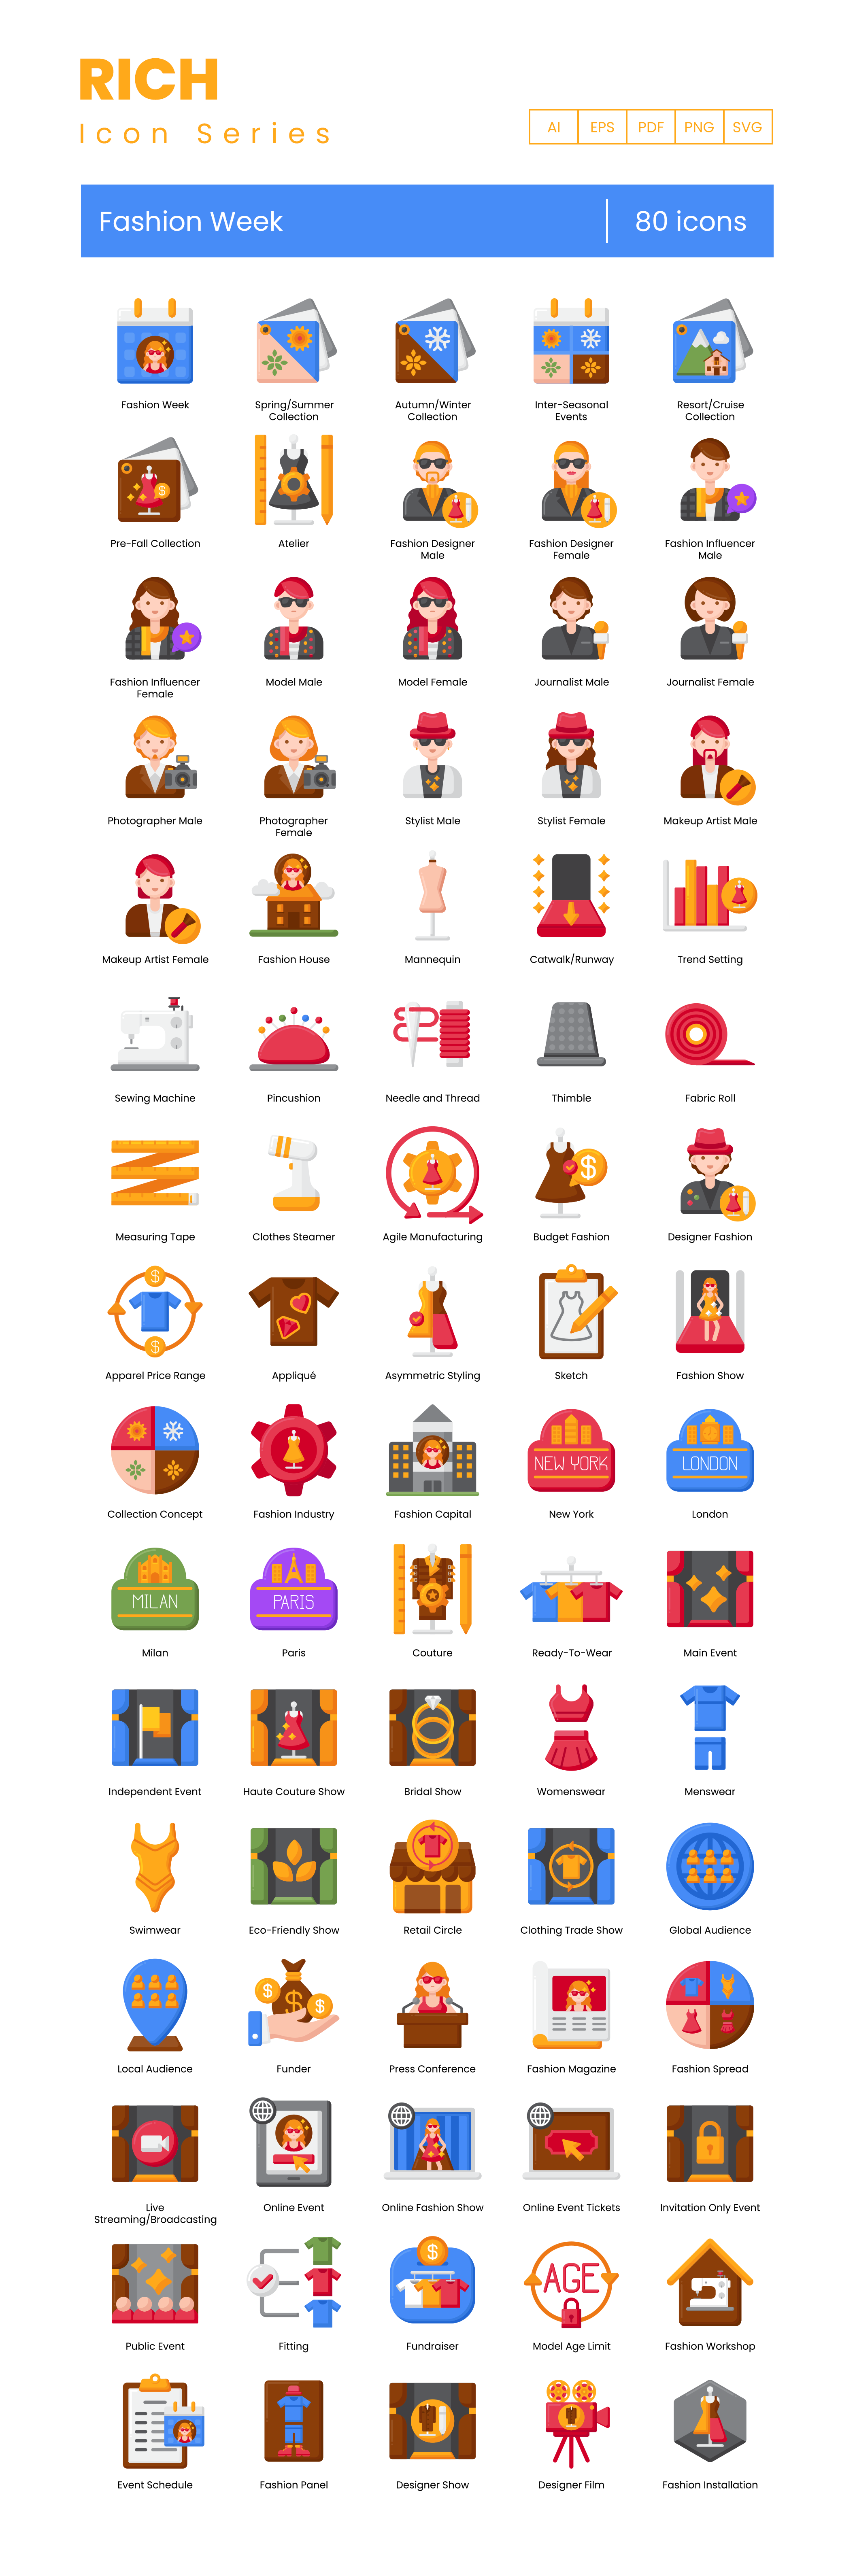 Fashion Week Vector Icons Preview Image